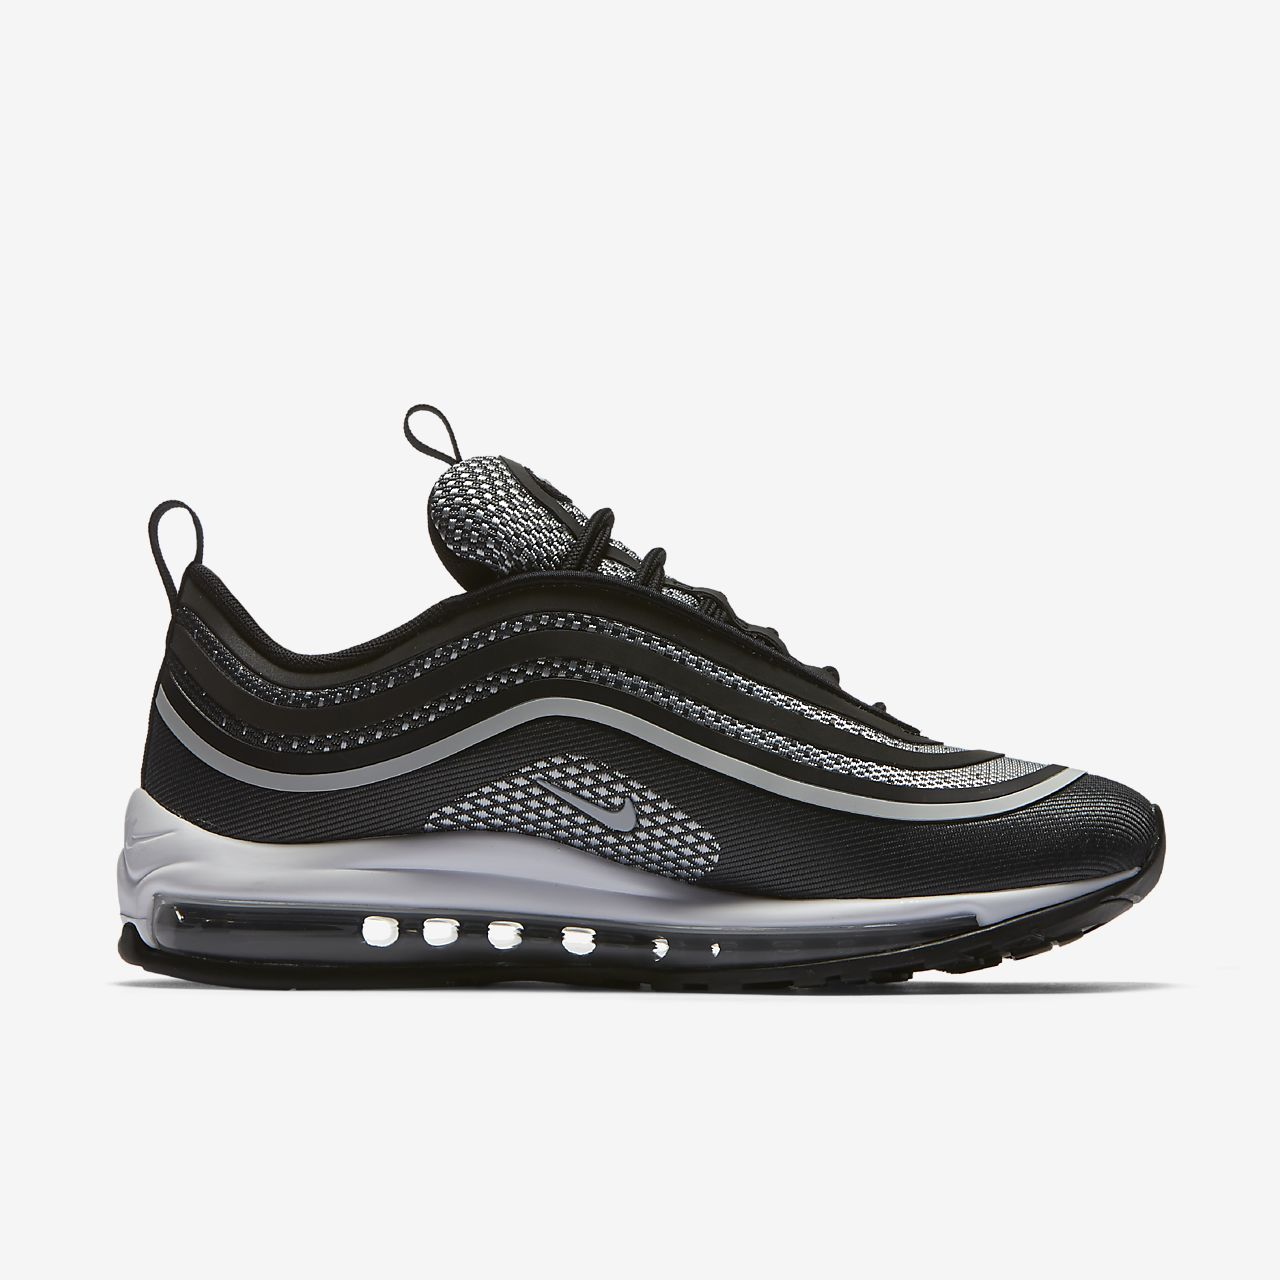 nike air max 97 womens marina blue nz|Free delivery!